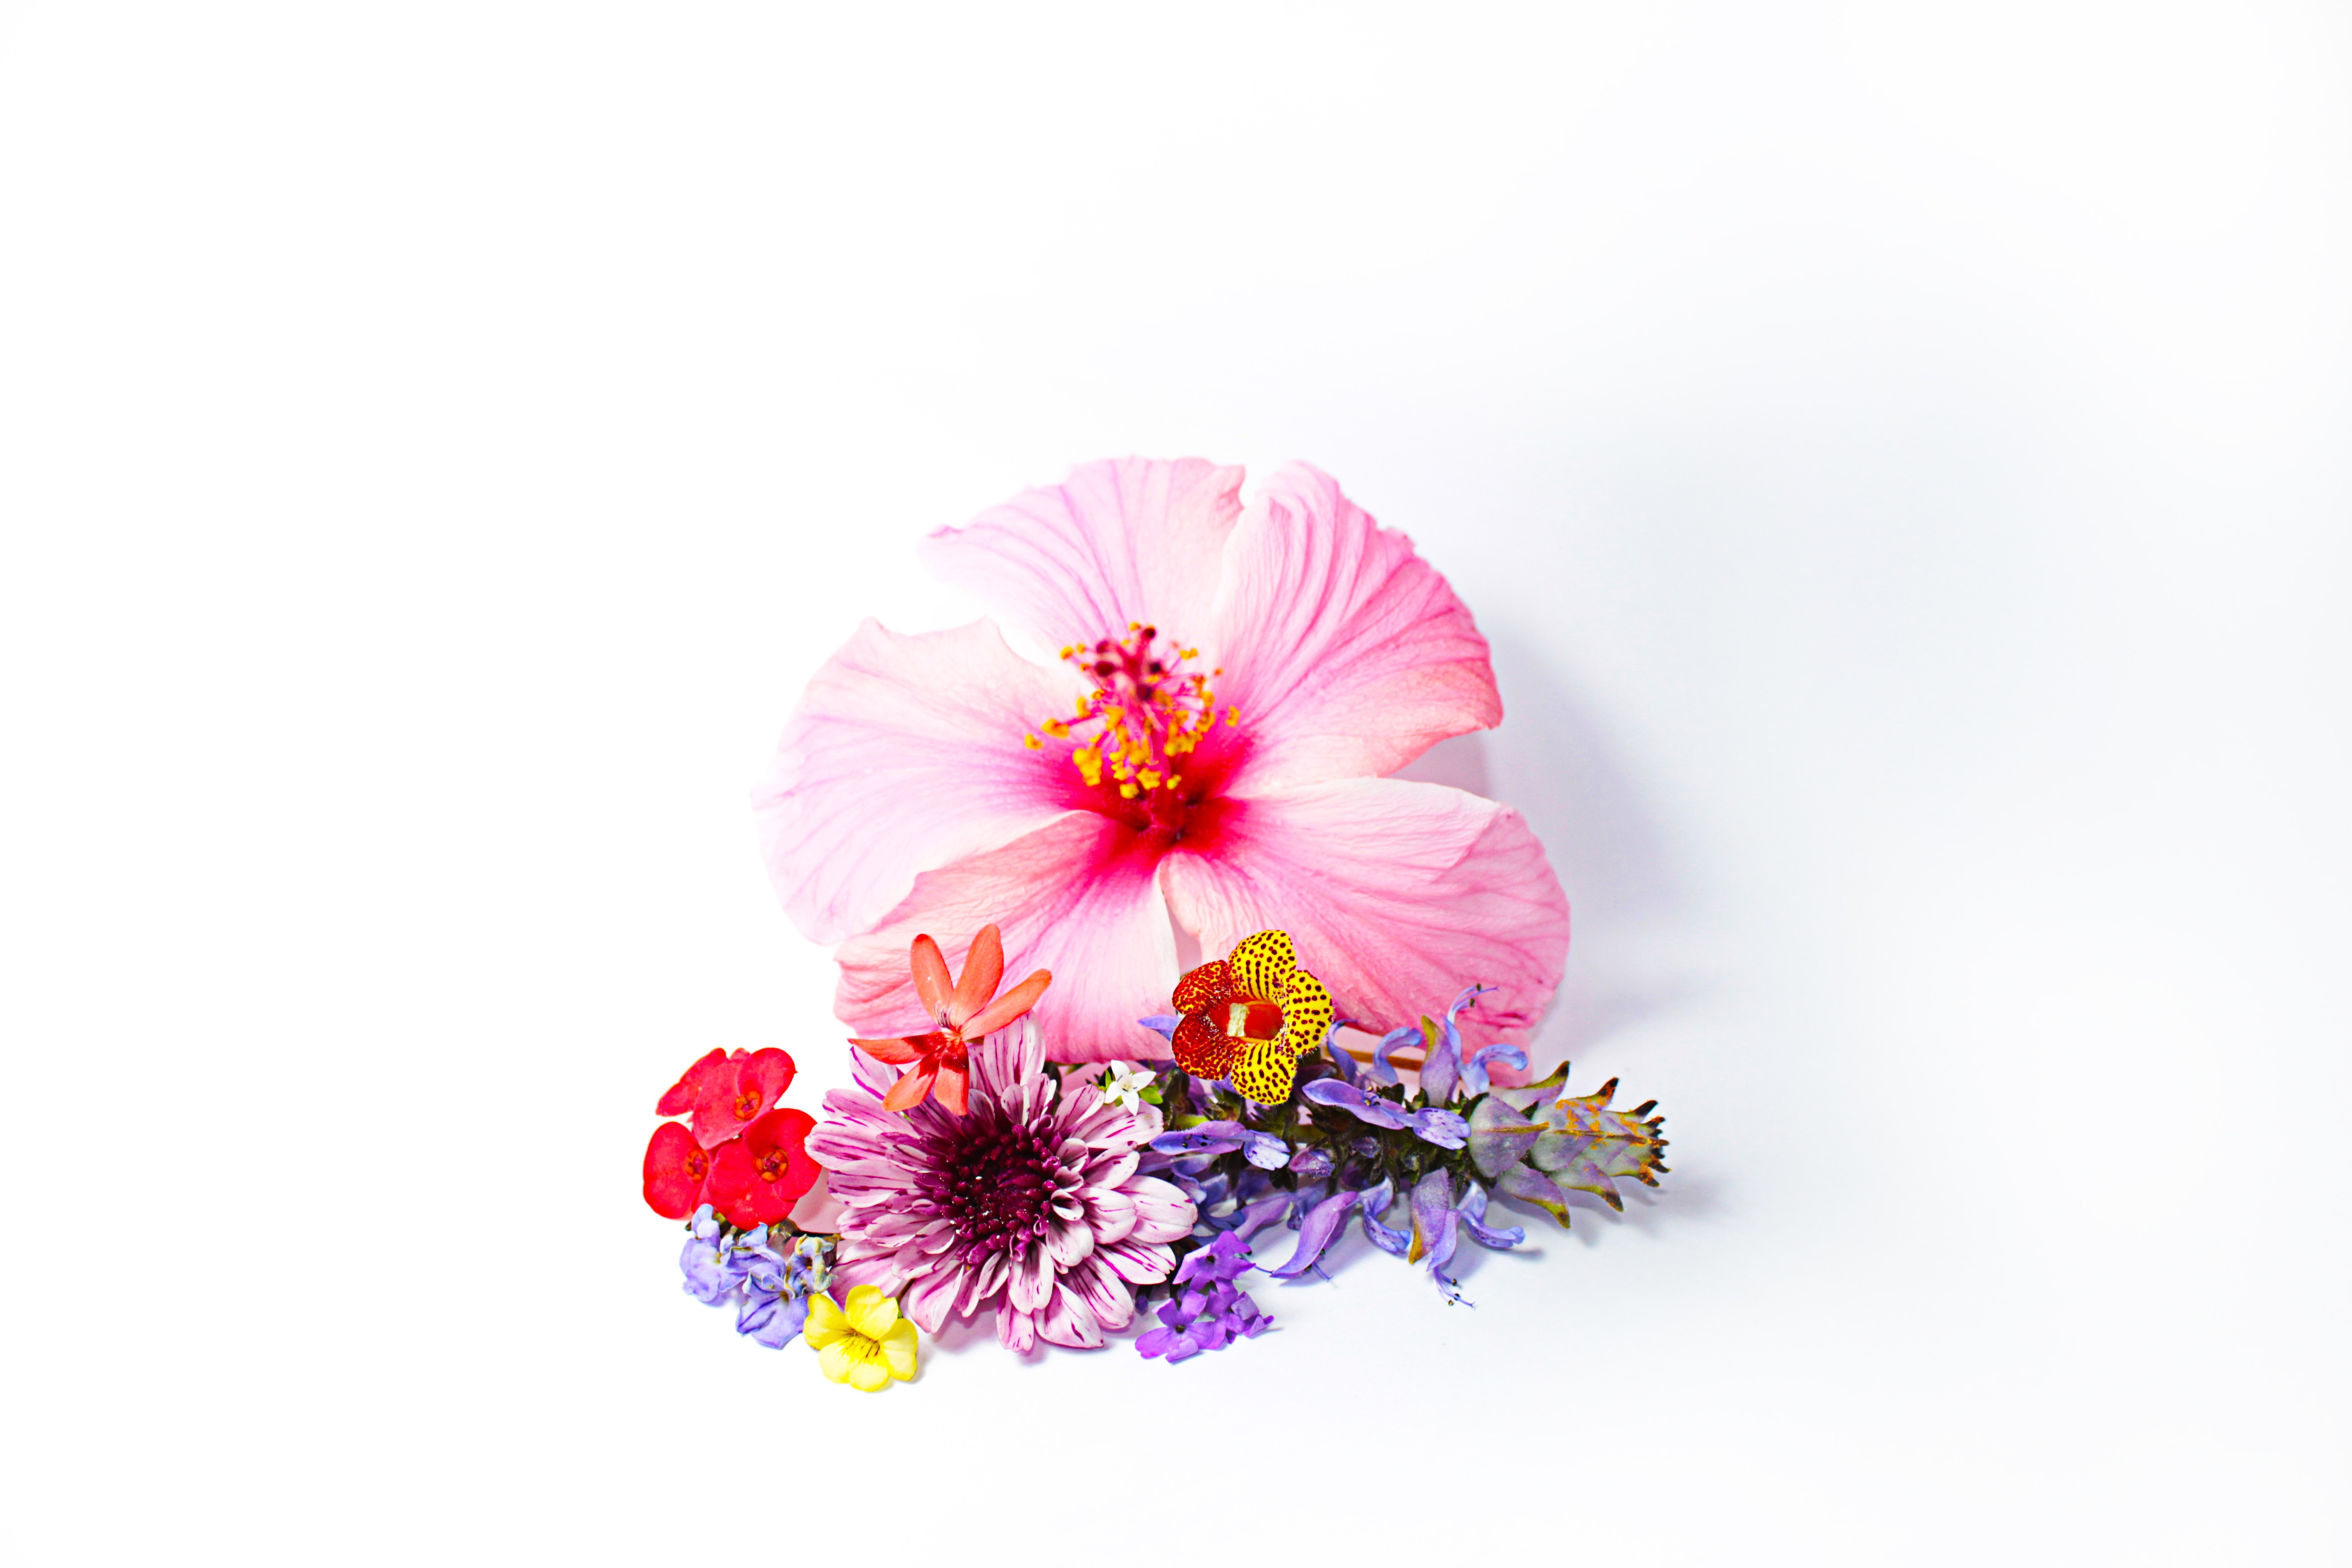 pink and purple flowers on white surface